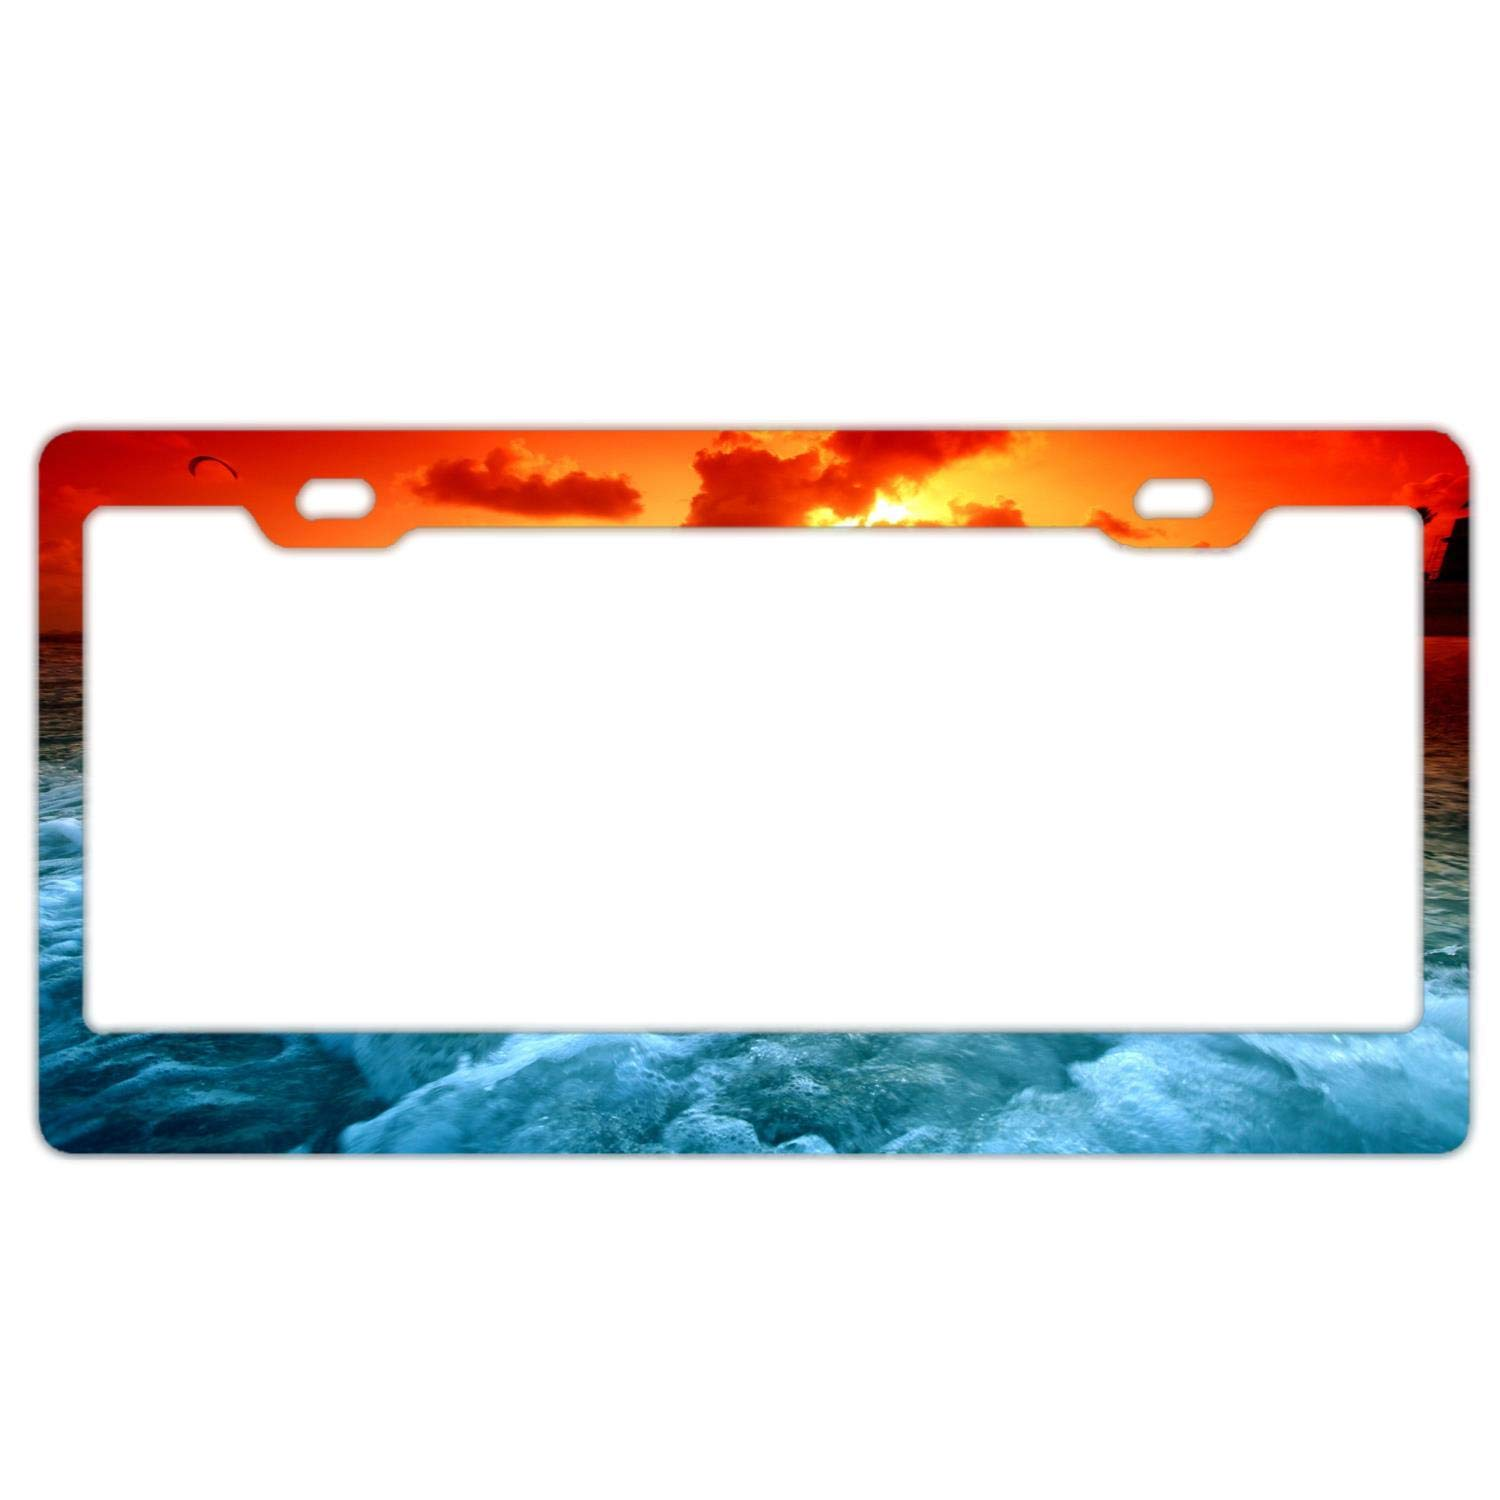 THE FLORES FAMILY FUNNY Metal License Plate Frame Tag Holder